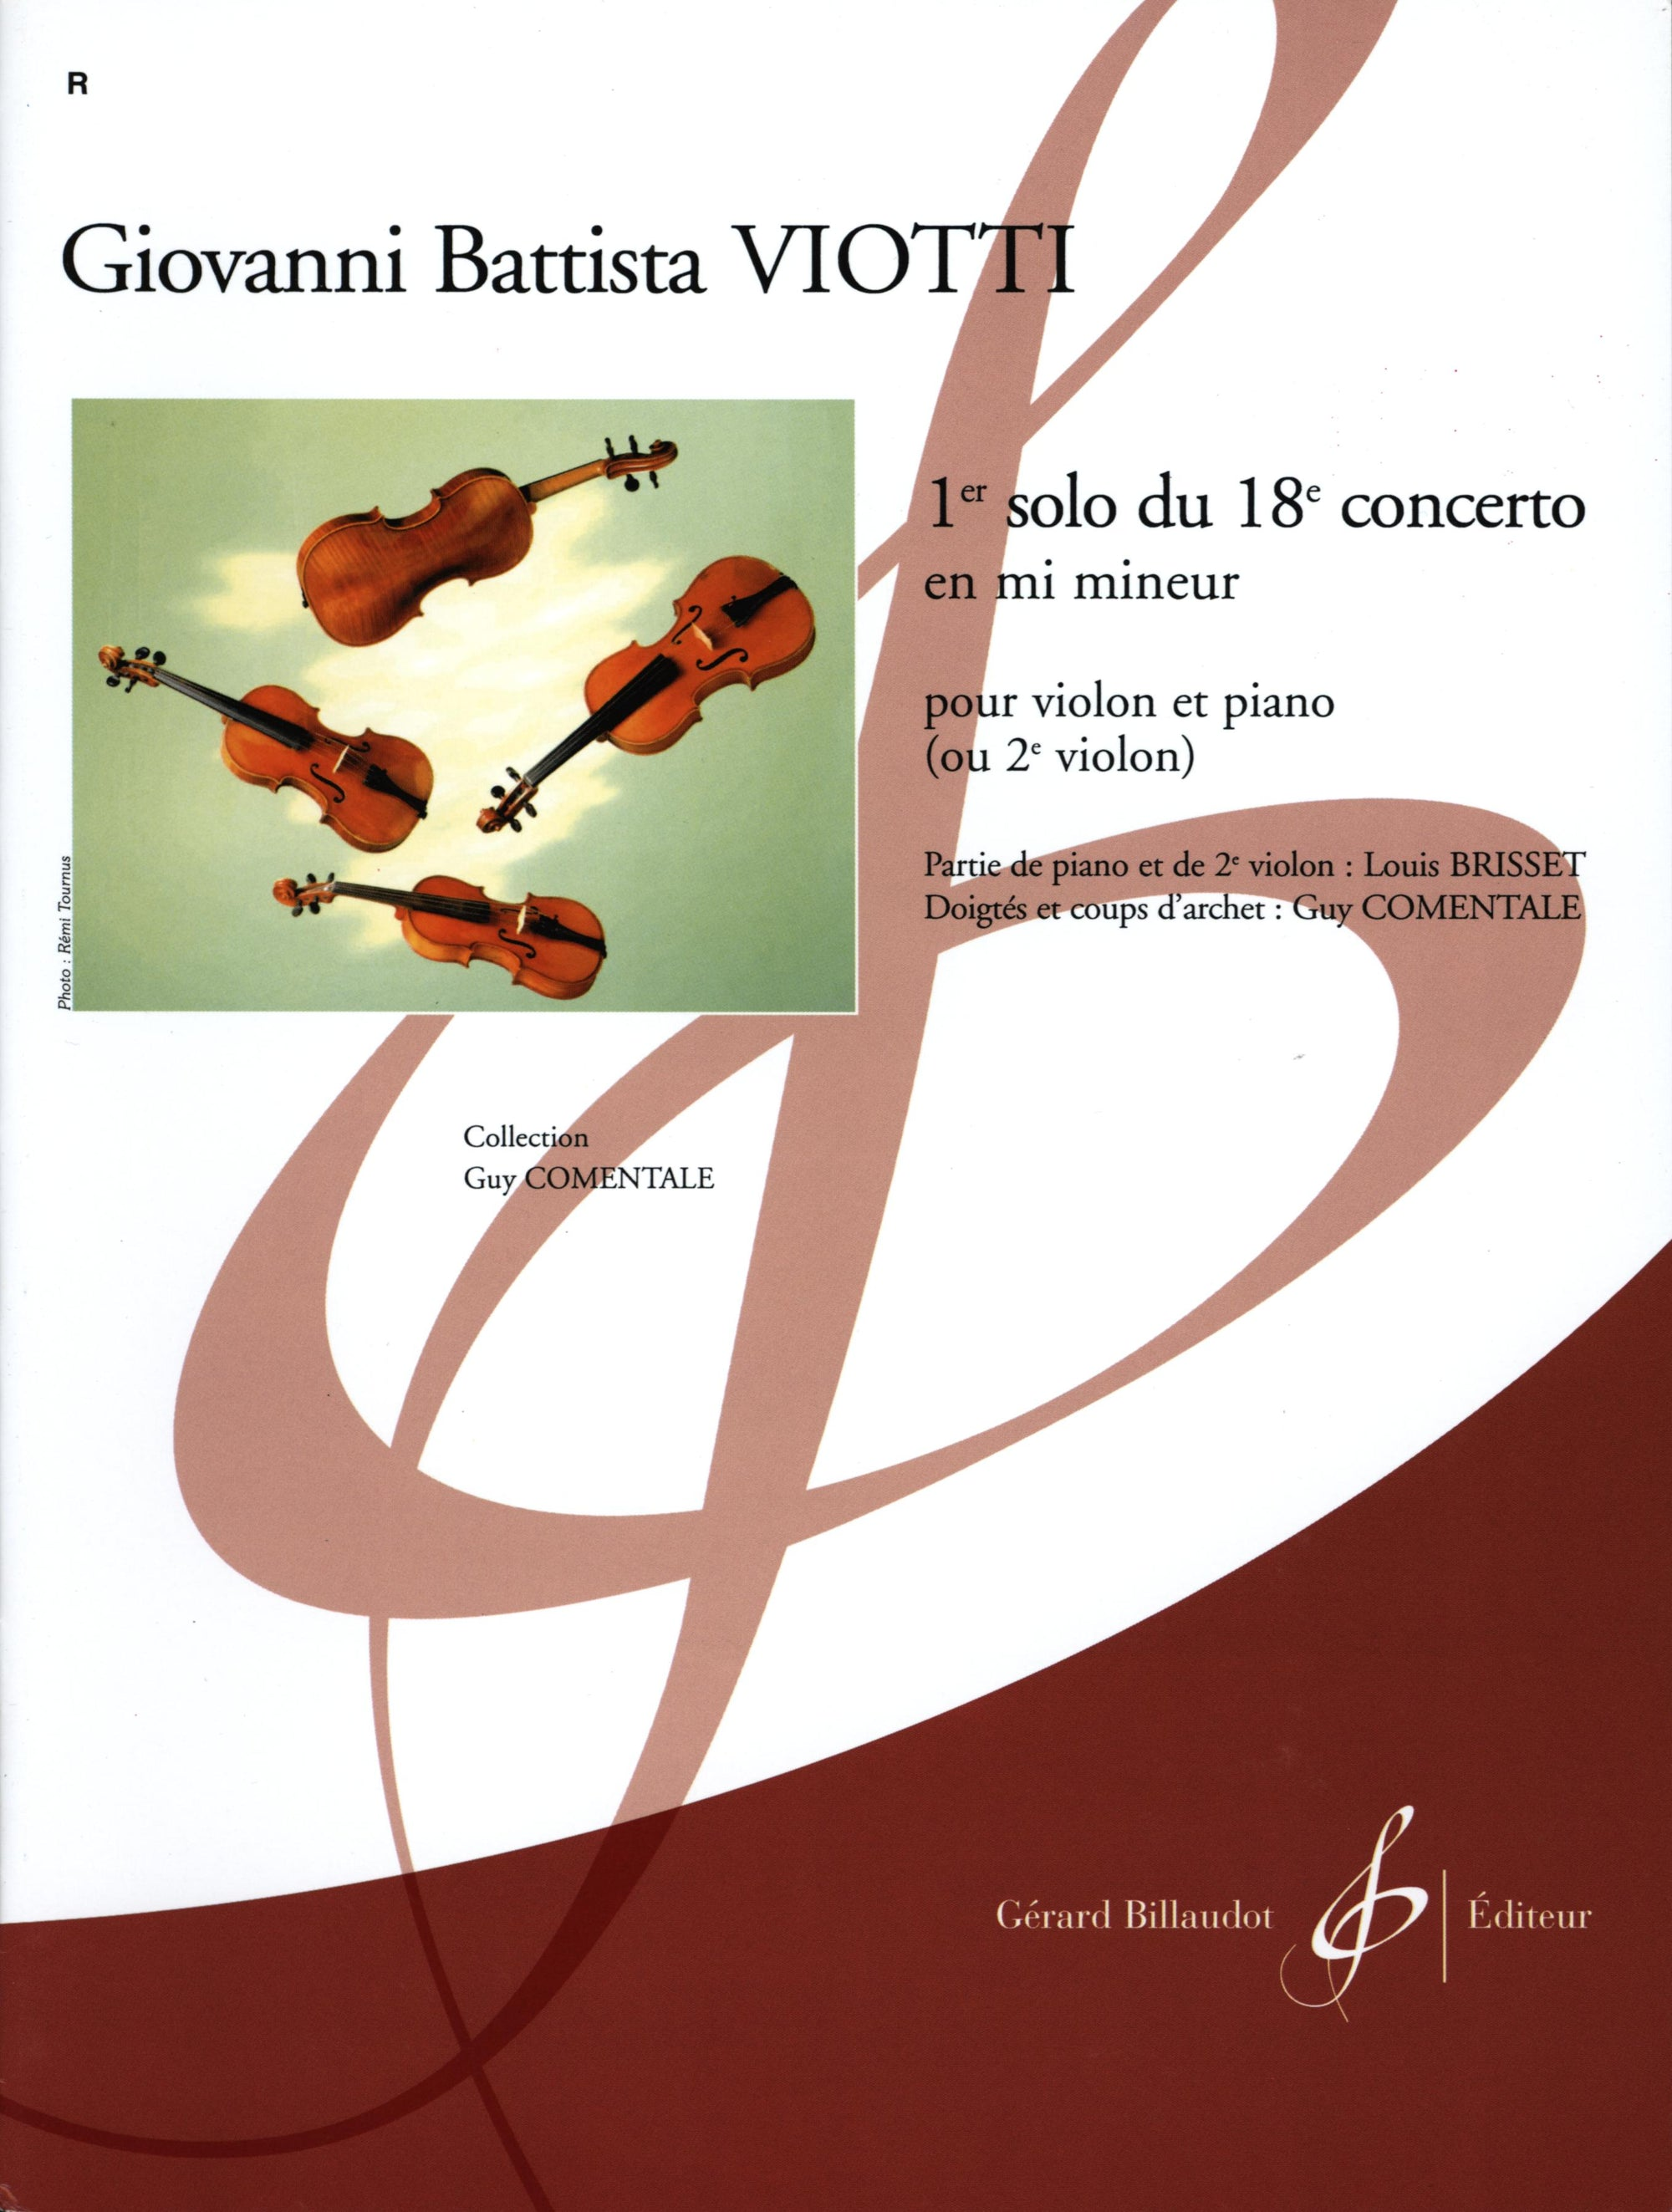 Viotti: 1st Solo from the 18th Violin Conceto in E Minor